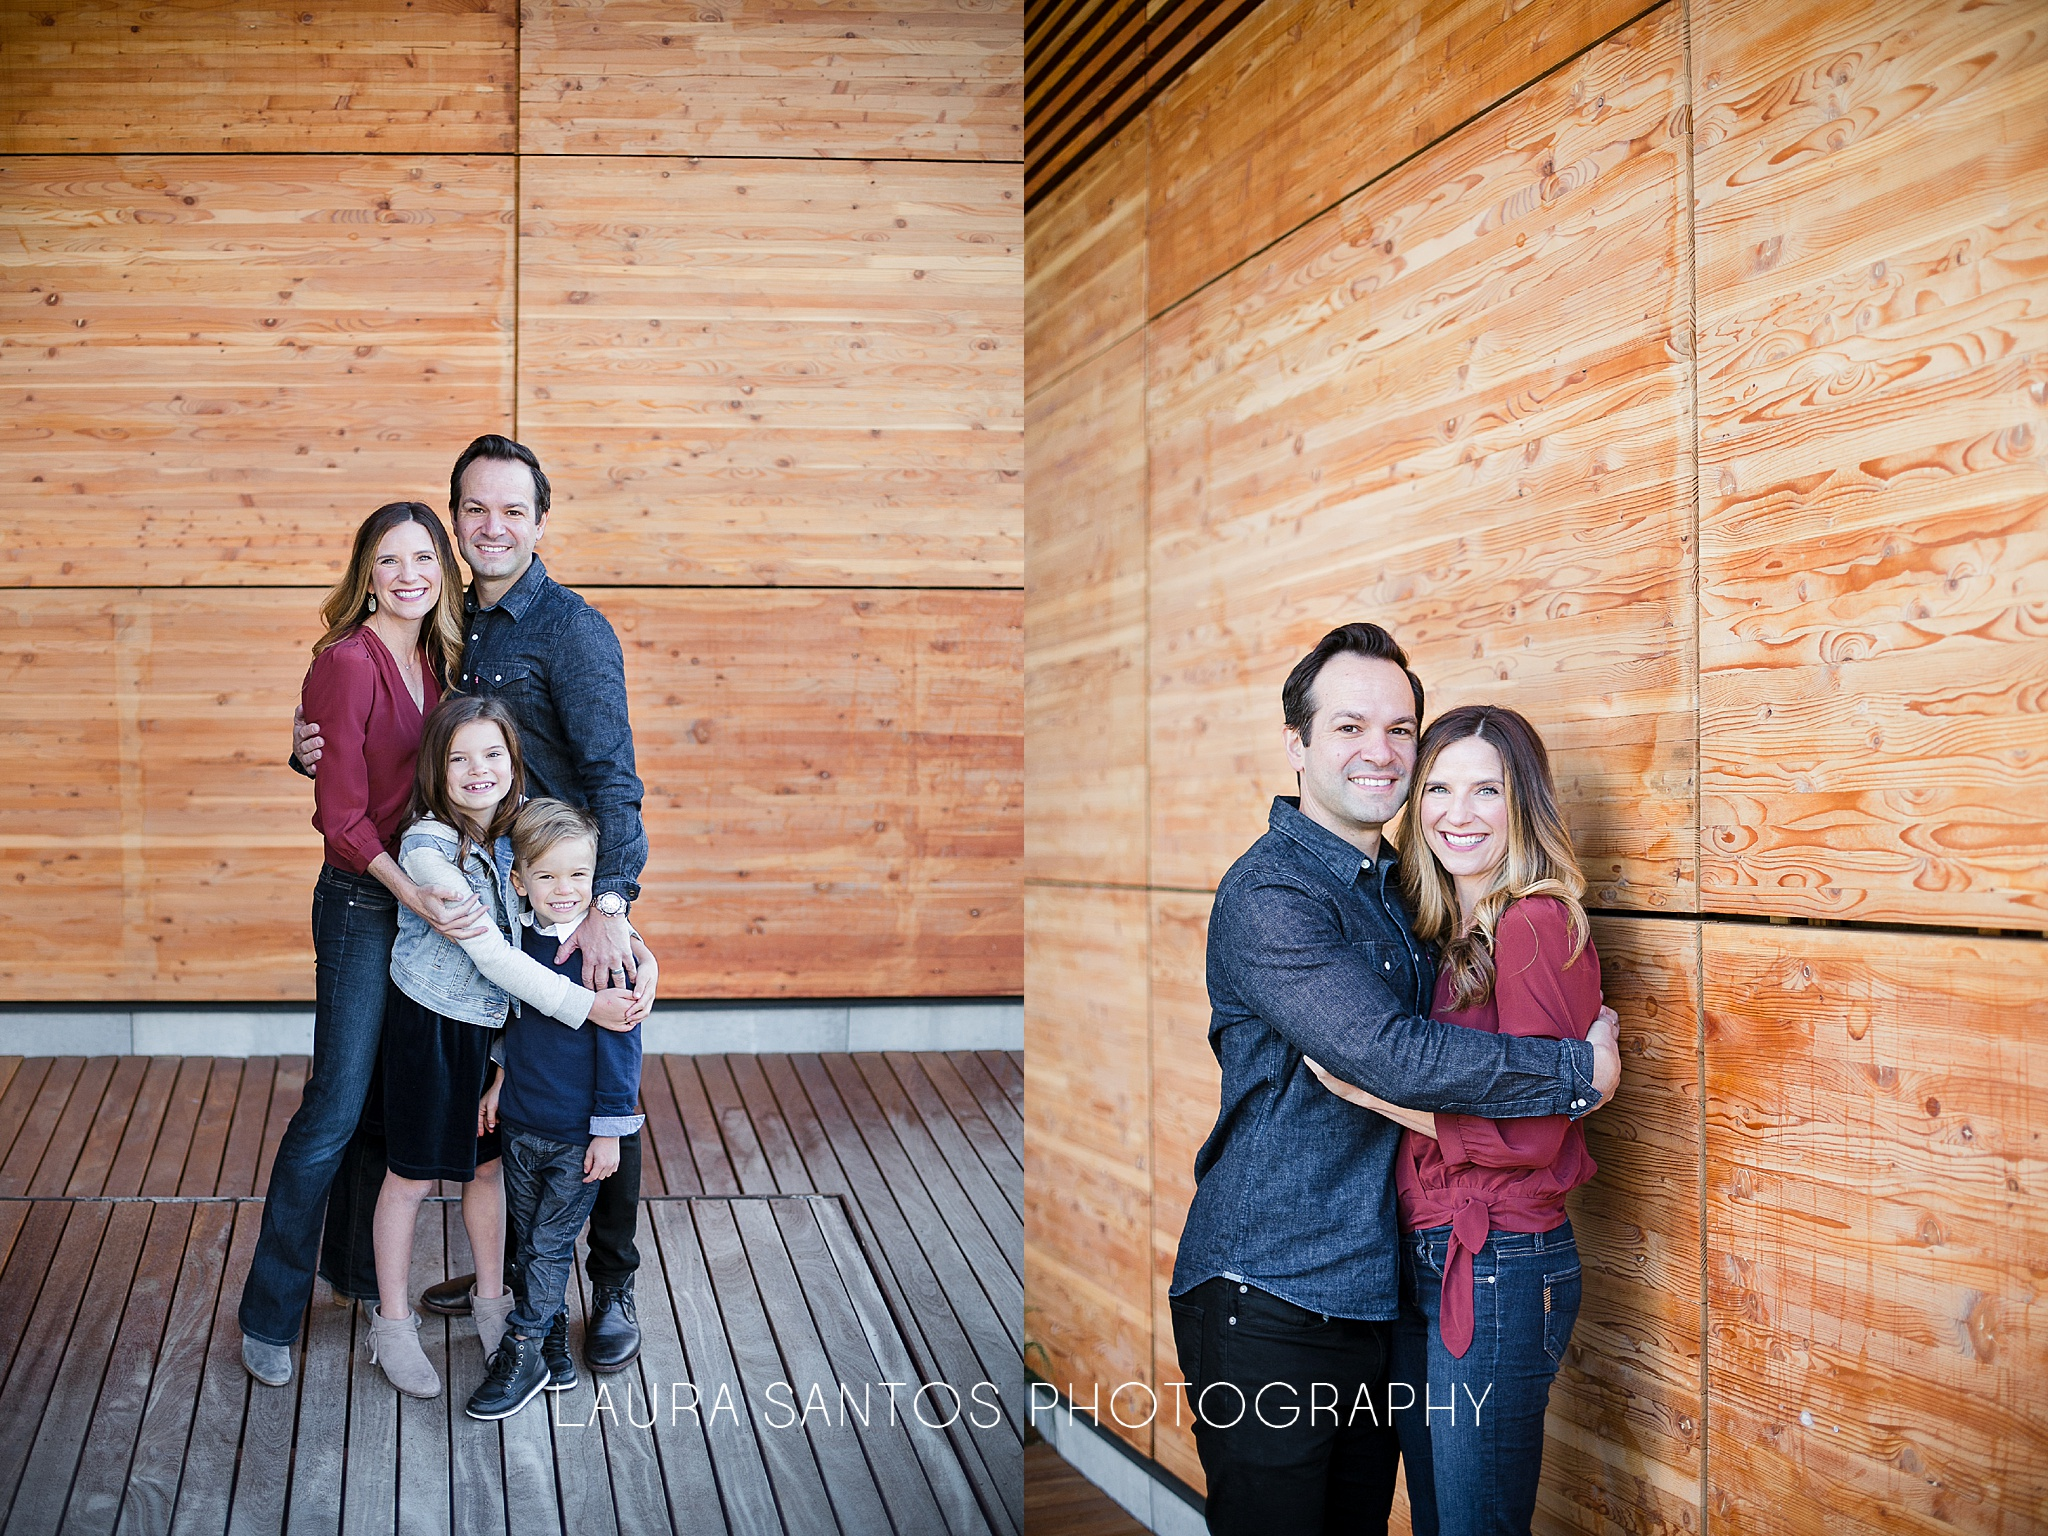 Laura Santos Photography Portland Oregon Family Photographer_0631.jpg